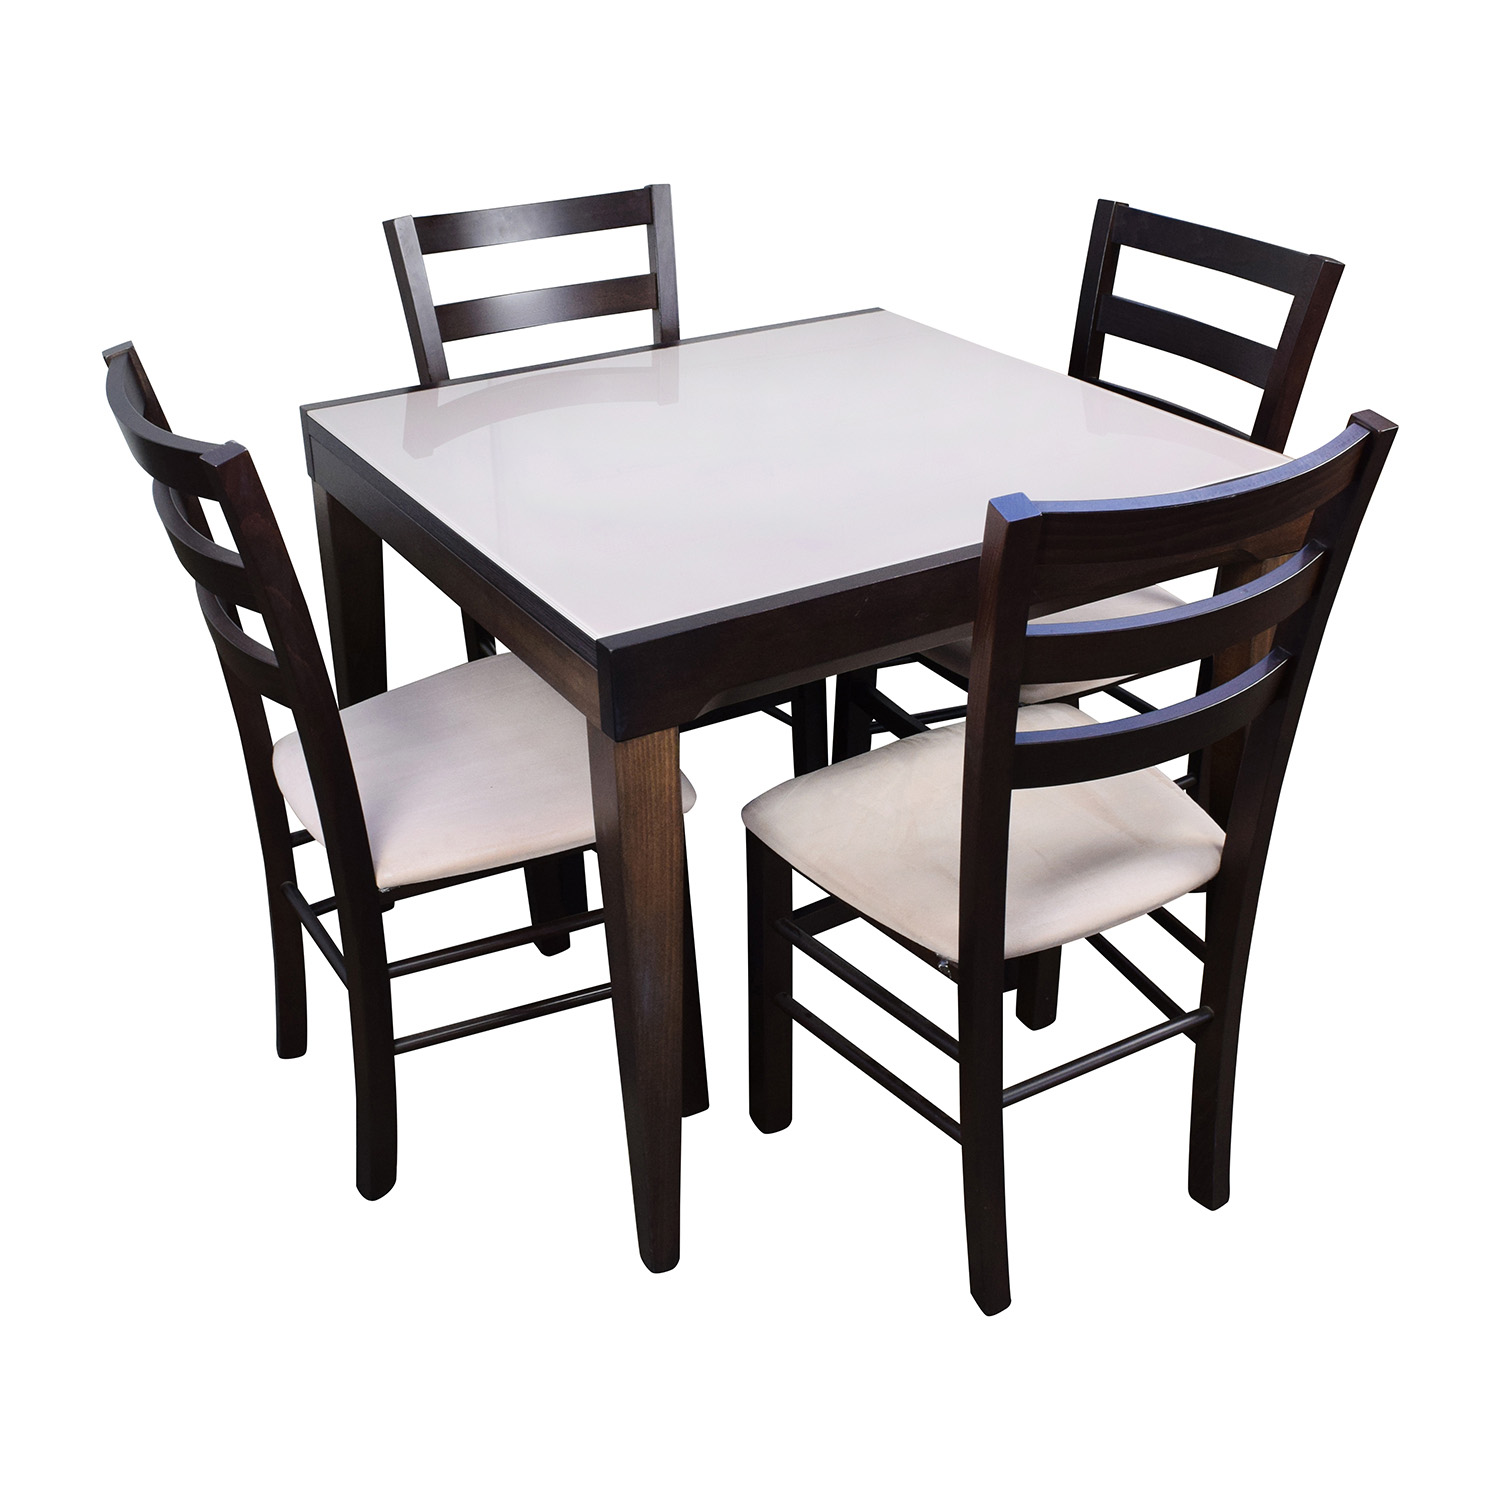 Genial 82% OFF   Macyu0027s Macyu0027s Cafe Latte Five Piece Extendable Dining Set / Tables